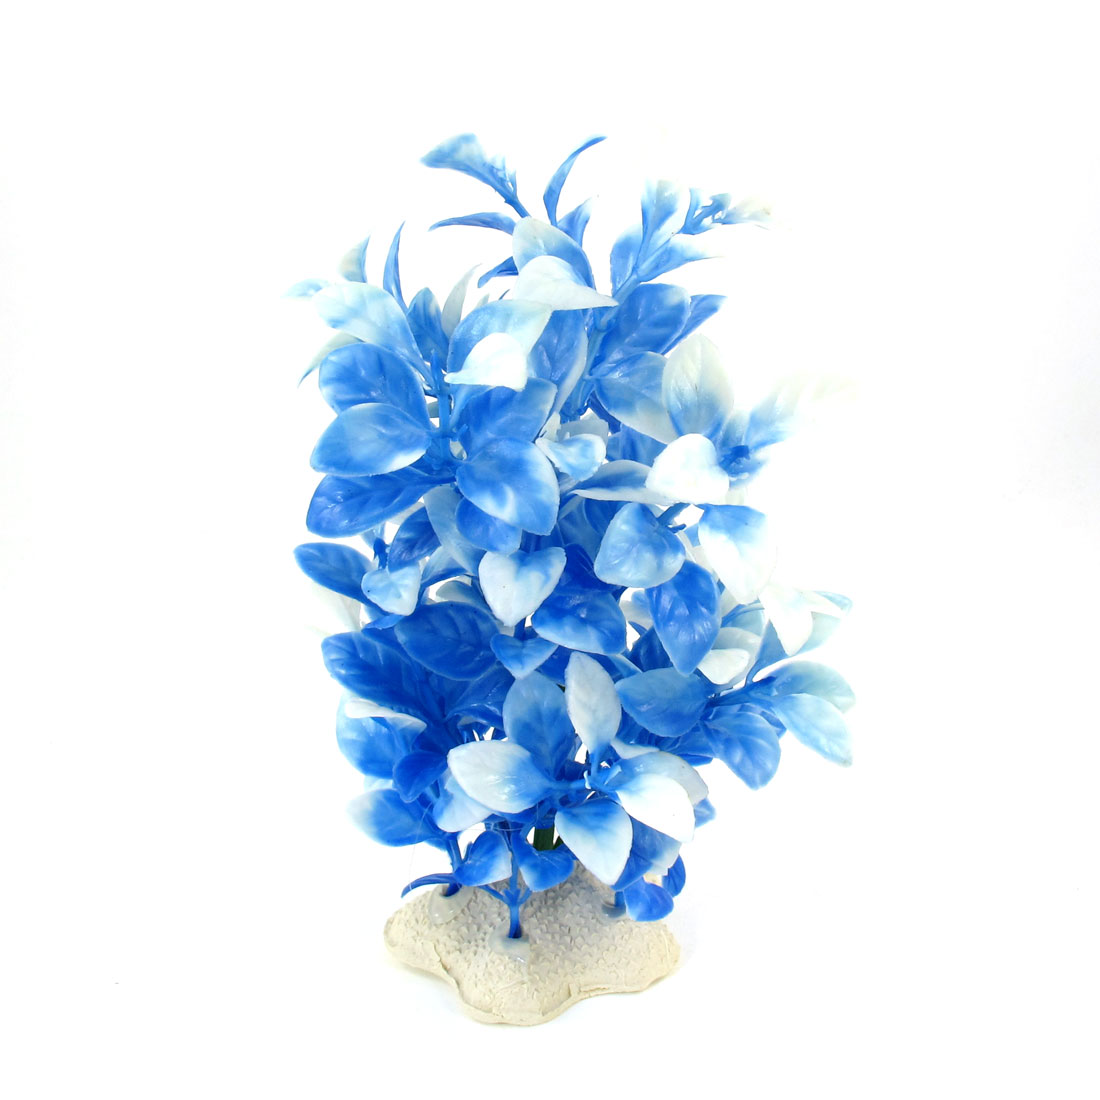 "7.3"" Height Ceramic Base Blue Manmade Underwater Plant Grass for Aquarium"